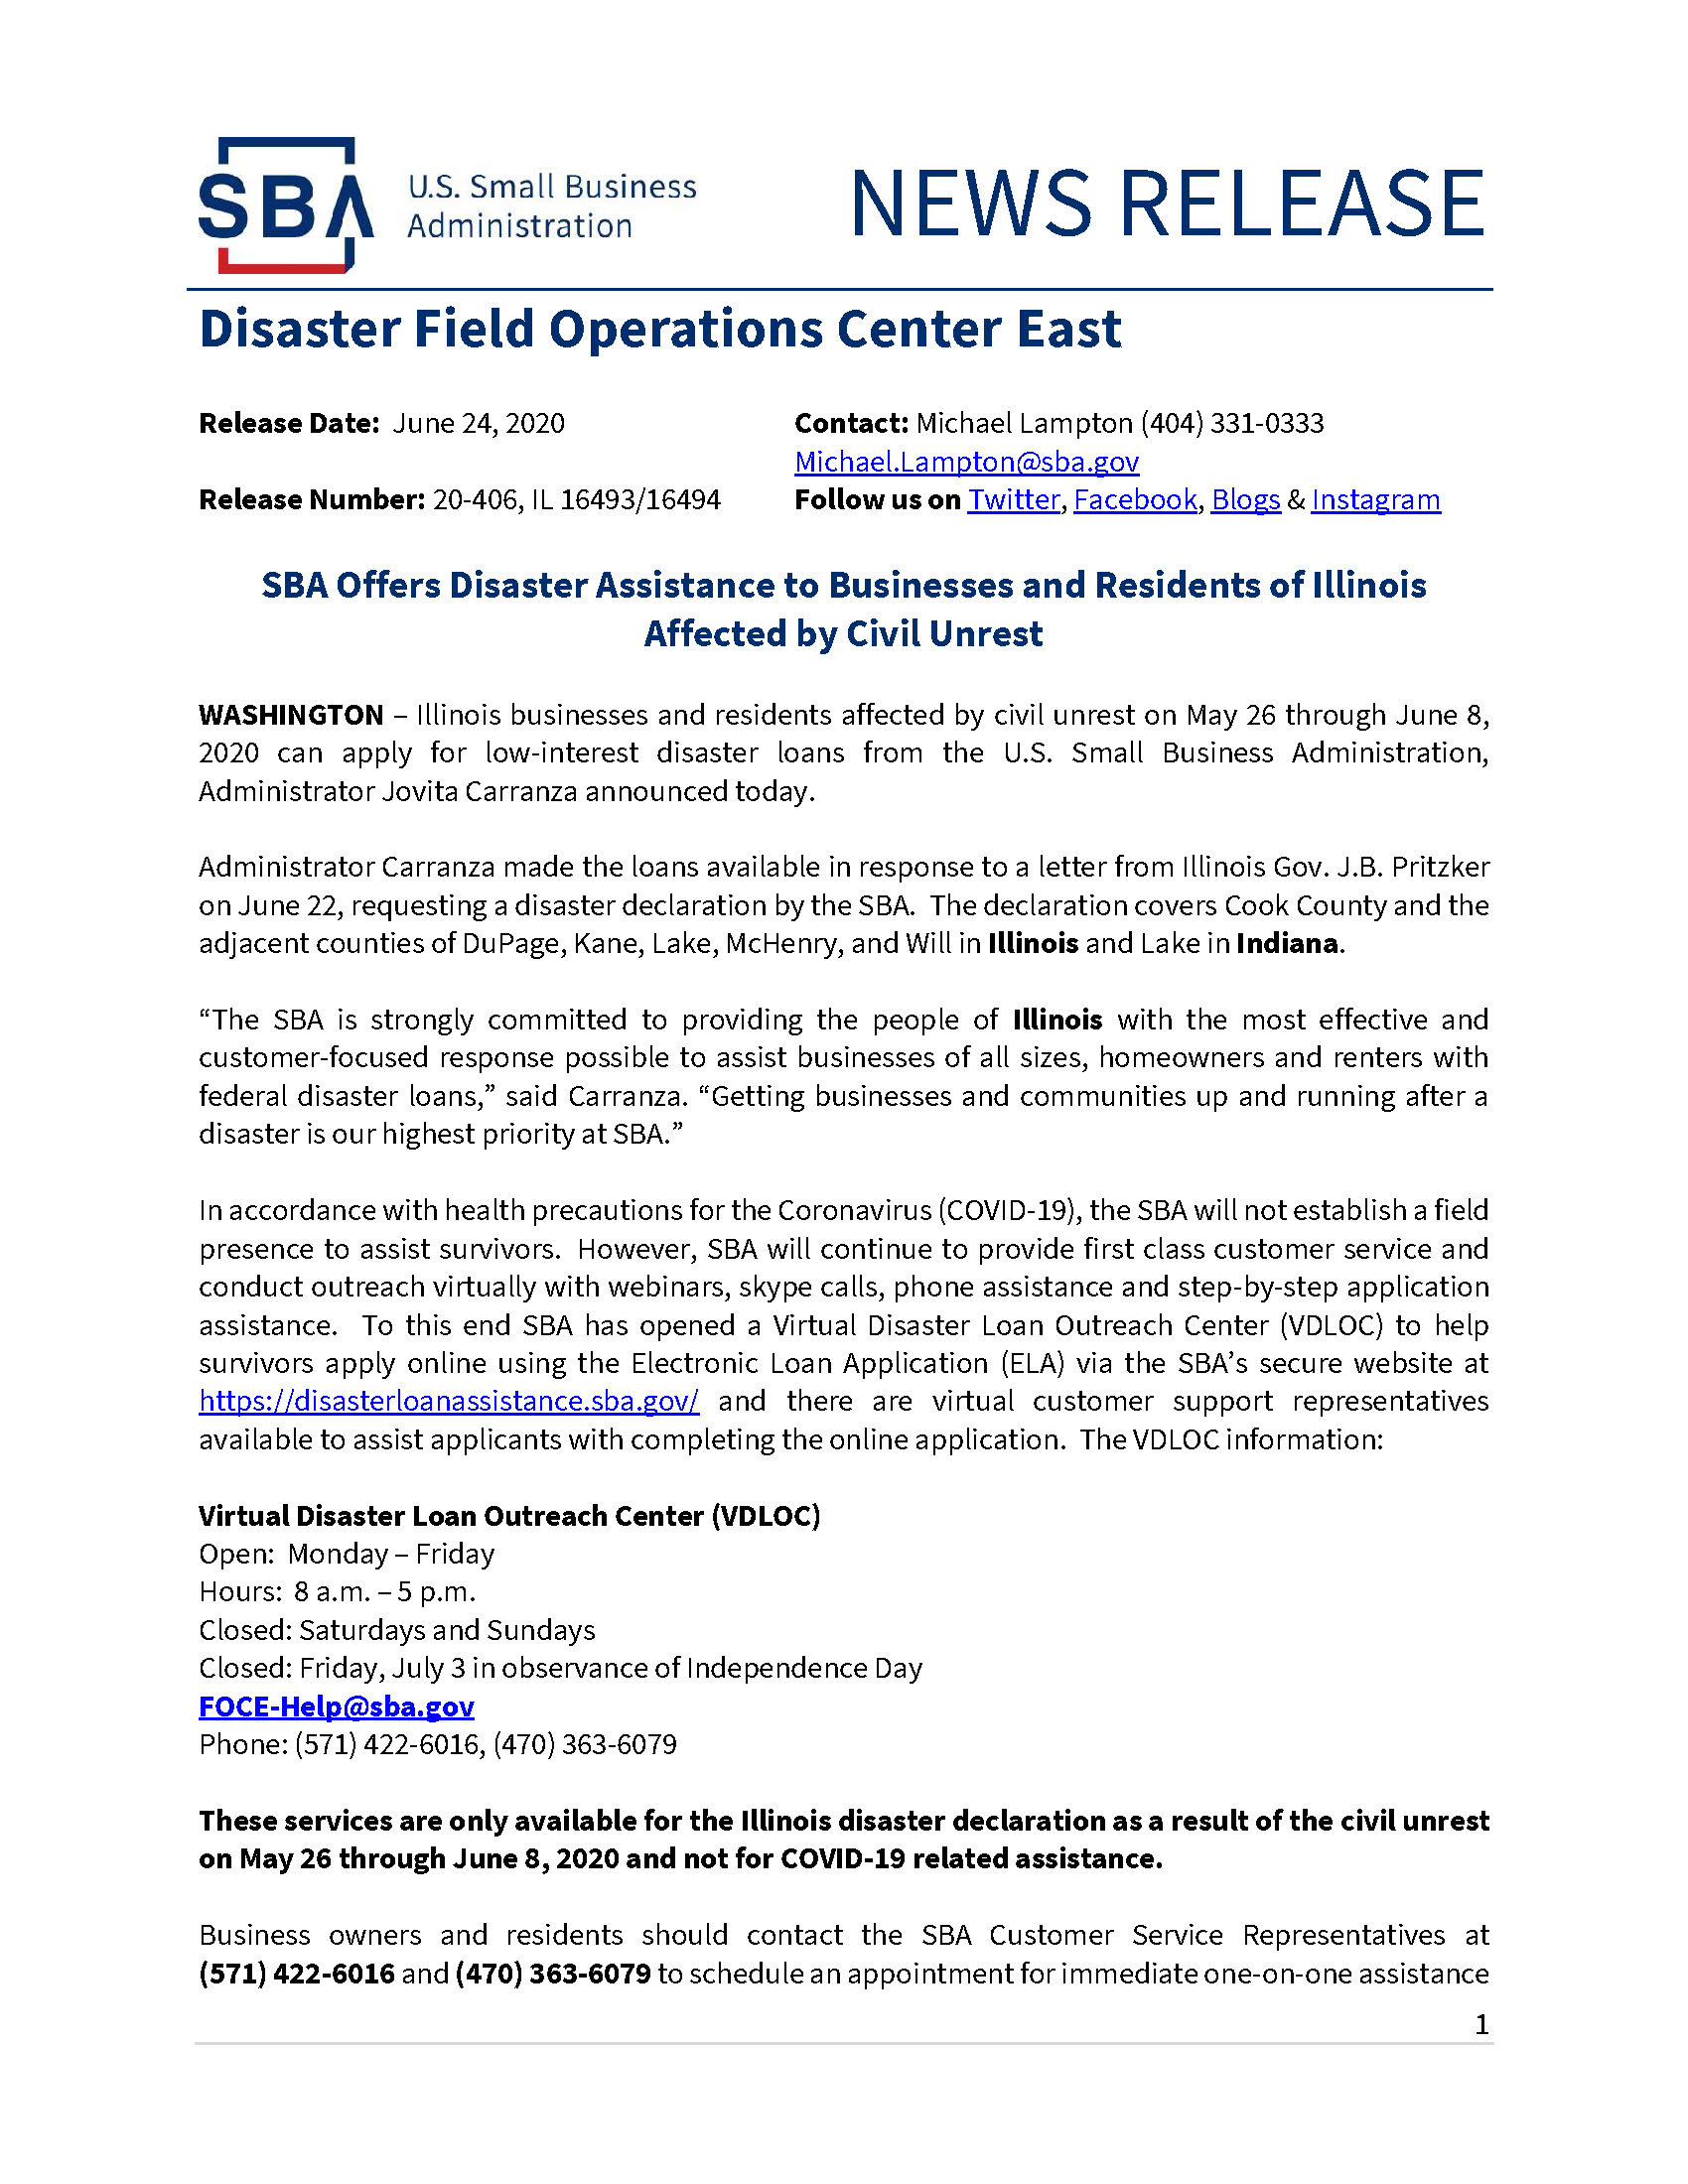 June 24 20-406 IL 16493 SBA Offers Disaster Assistance[1]_Page_1